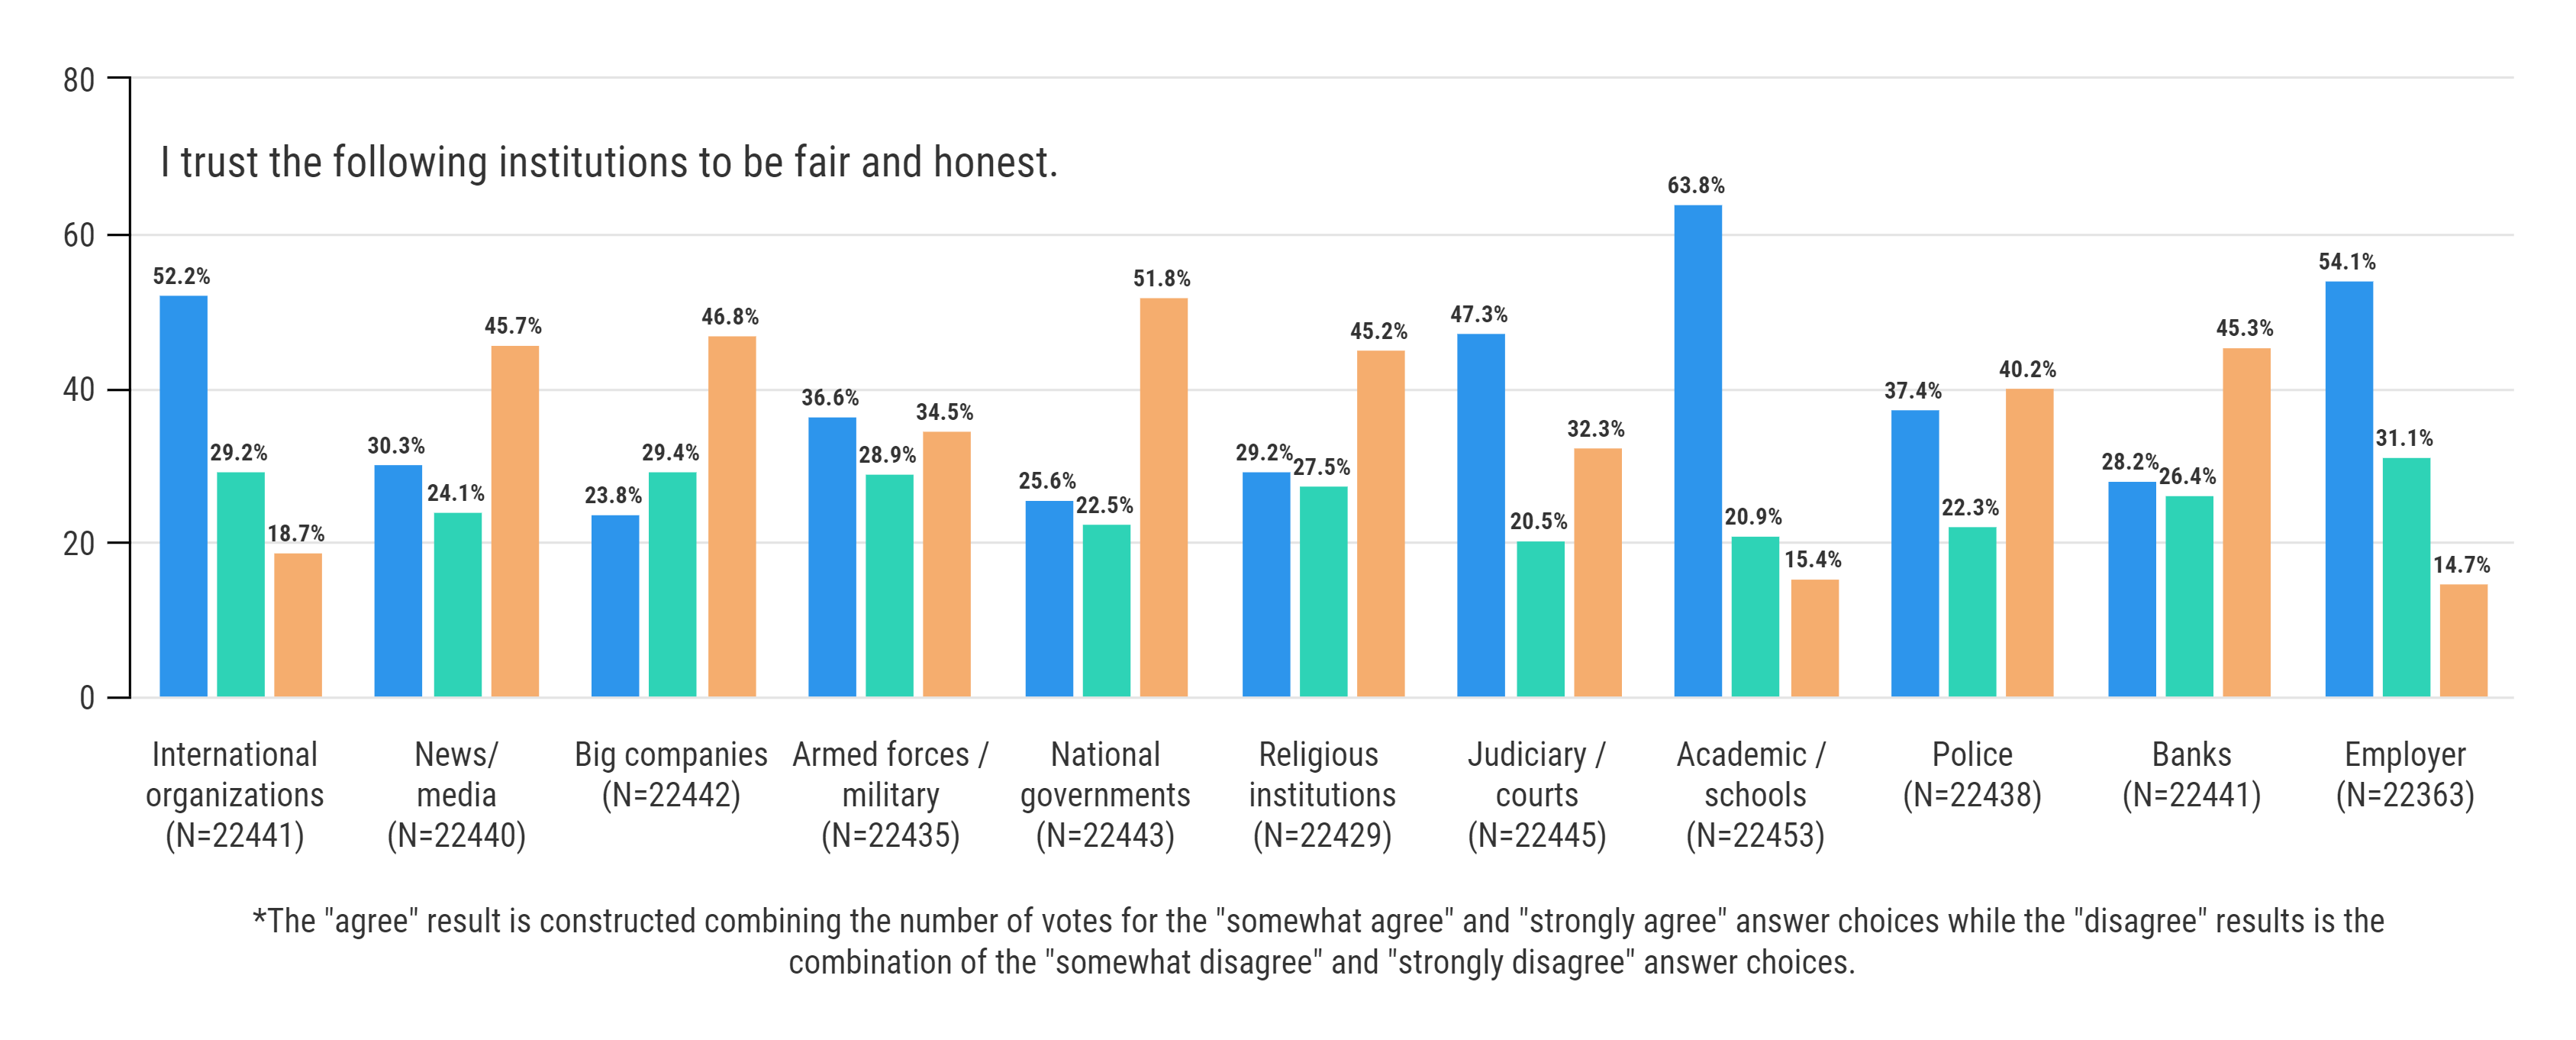 5 things we learned from one of the world's biggest surveys of young people